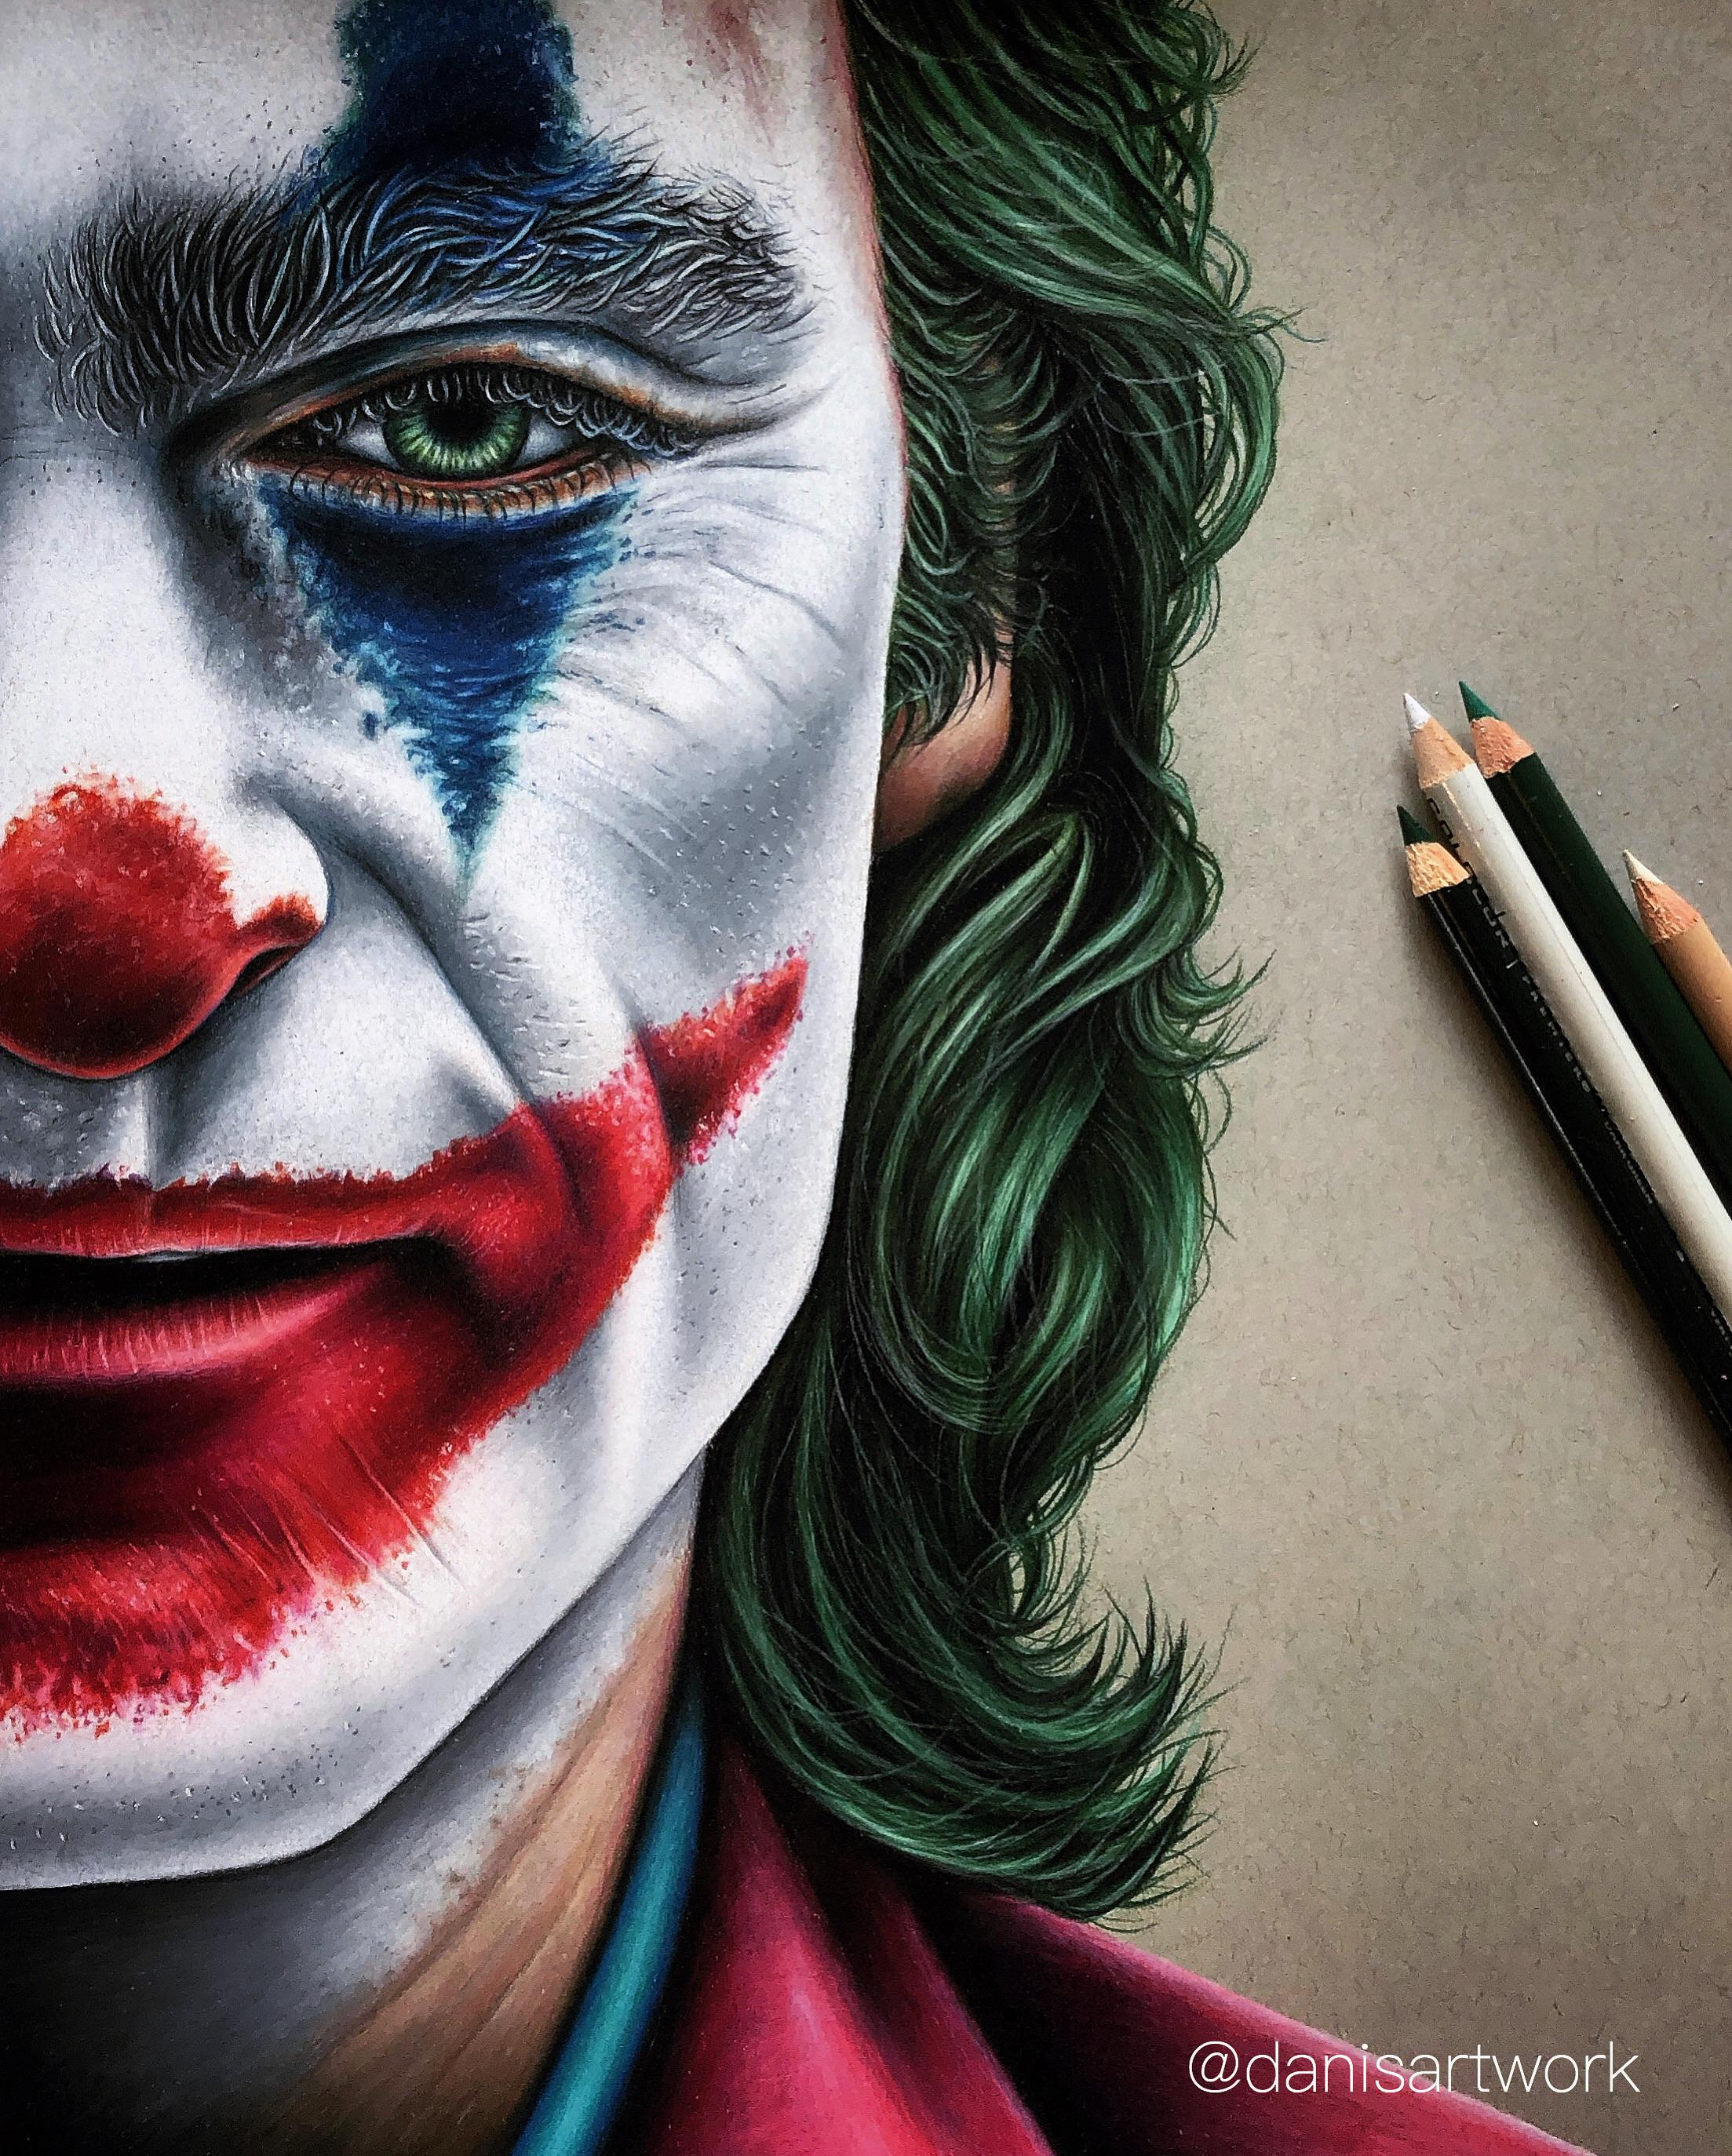 Really proud of my finished coloured pencil drawing of the Joker